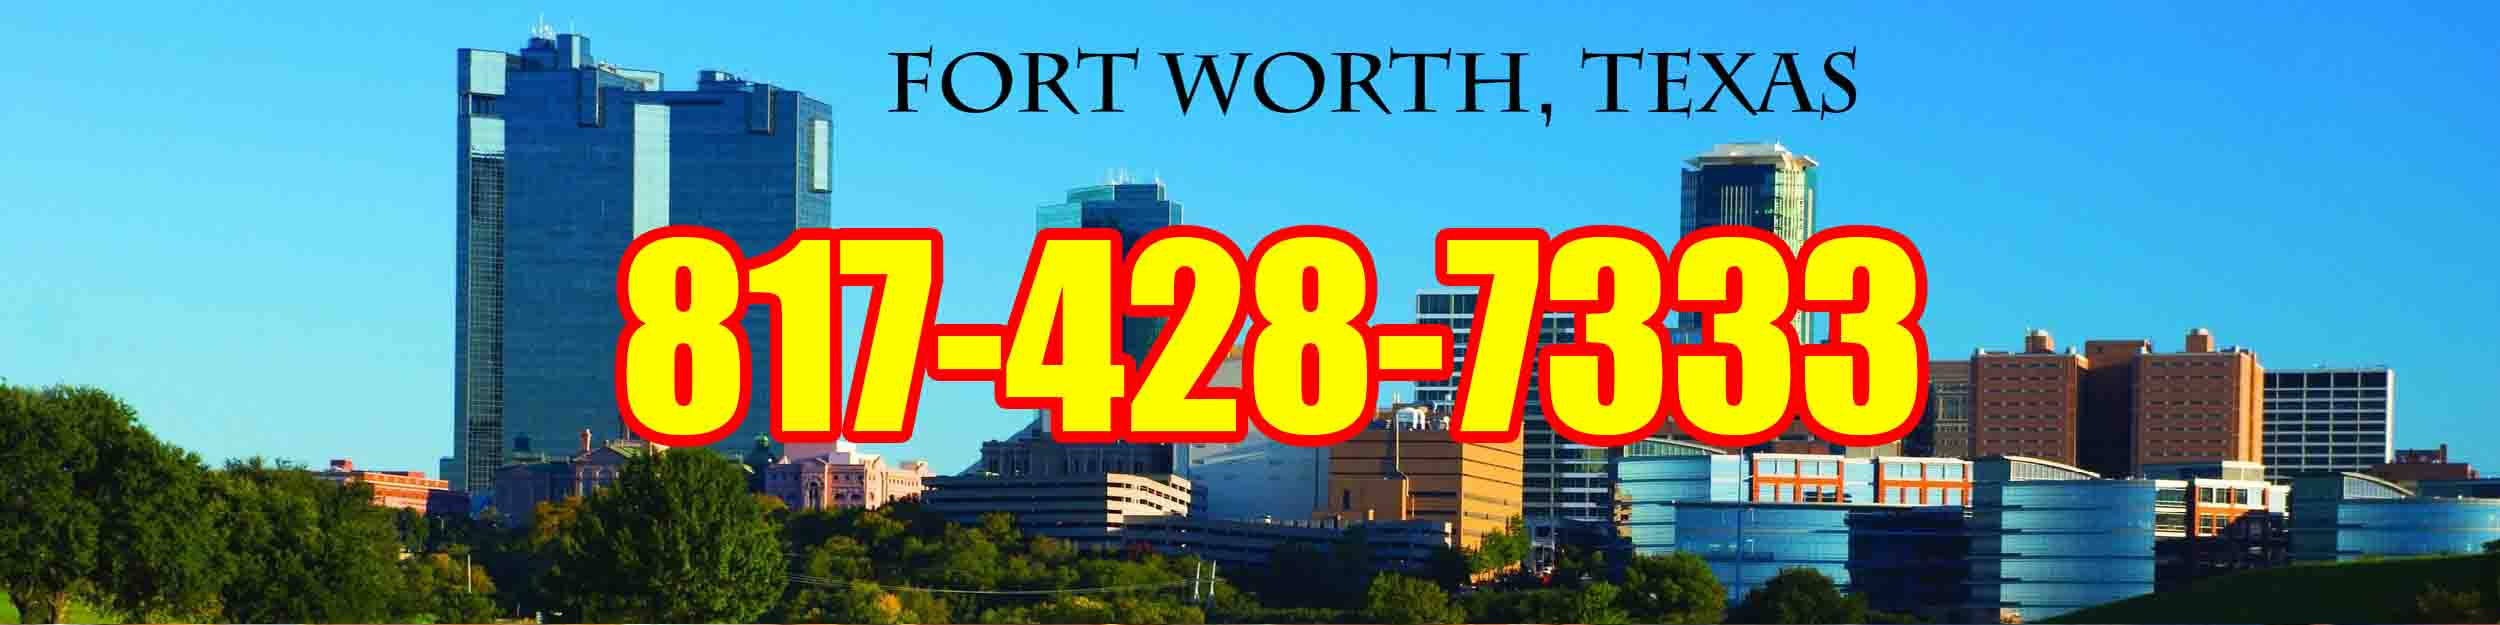 fort worth tx Header - Automotive Lockout Services